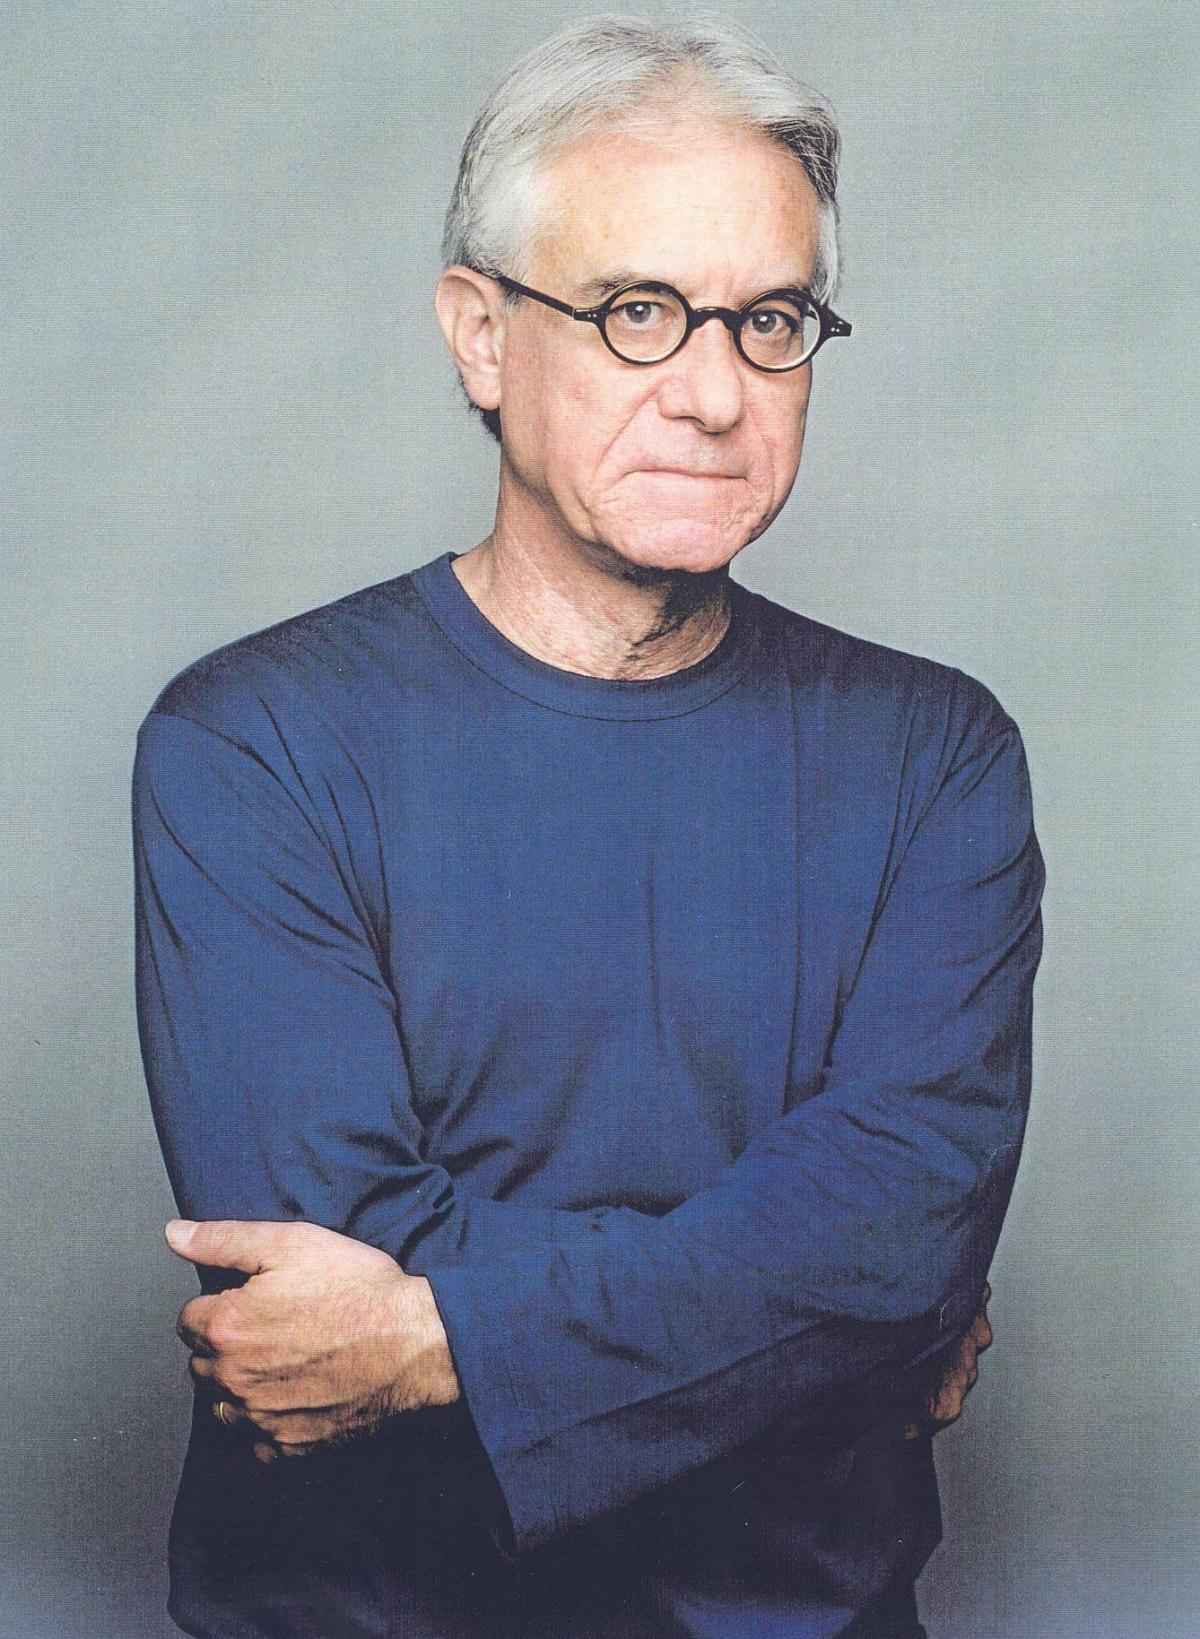 Greil Marcus was the first reviews editor at Rolling Stone and is also the author of Mystery Train, Lipstick Traces and The Doors.